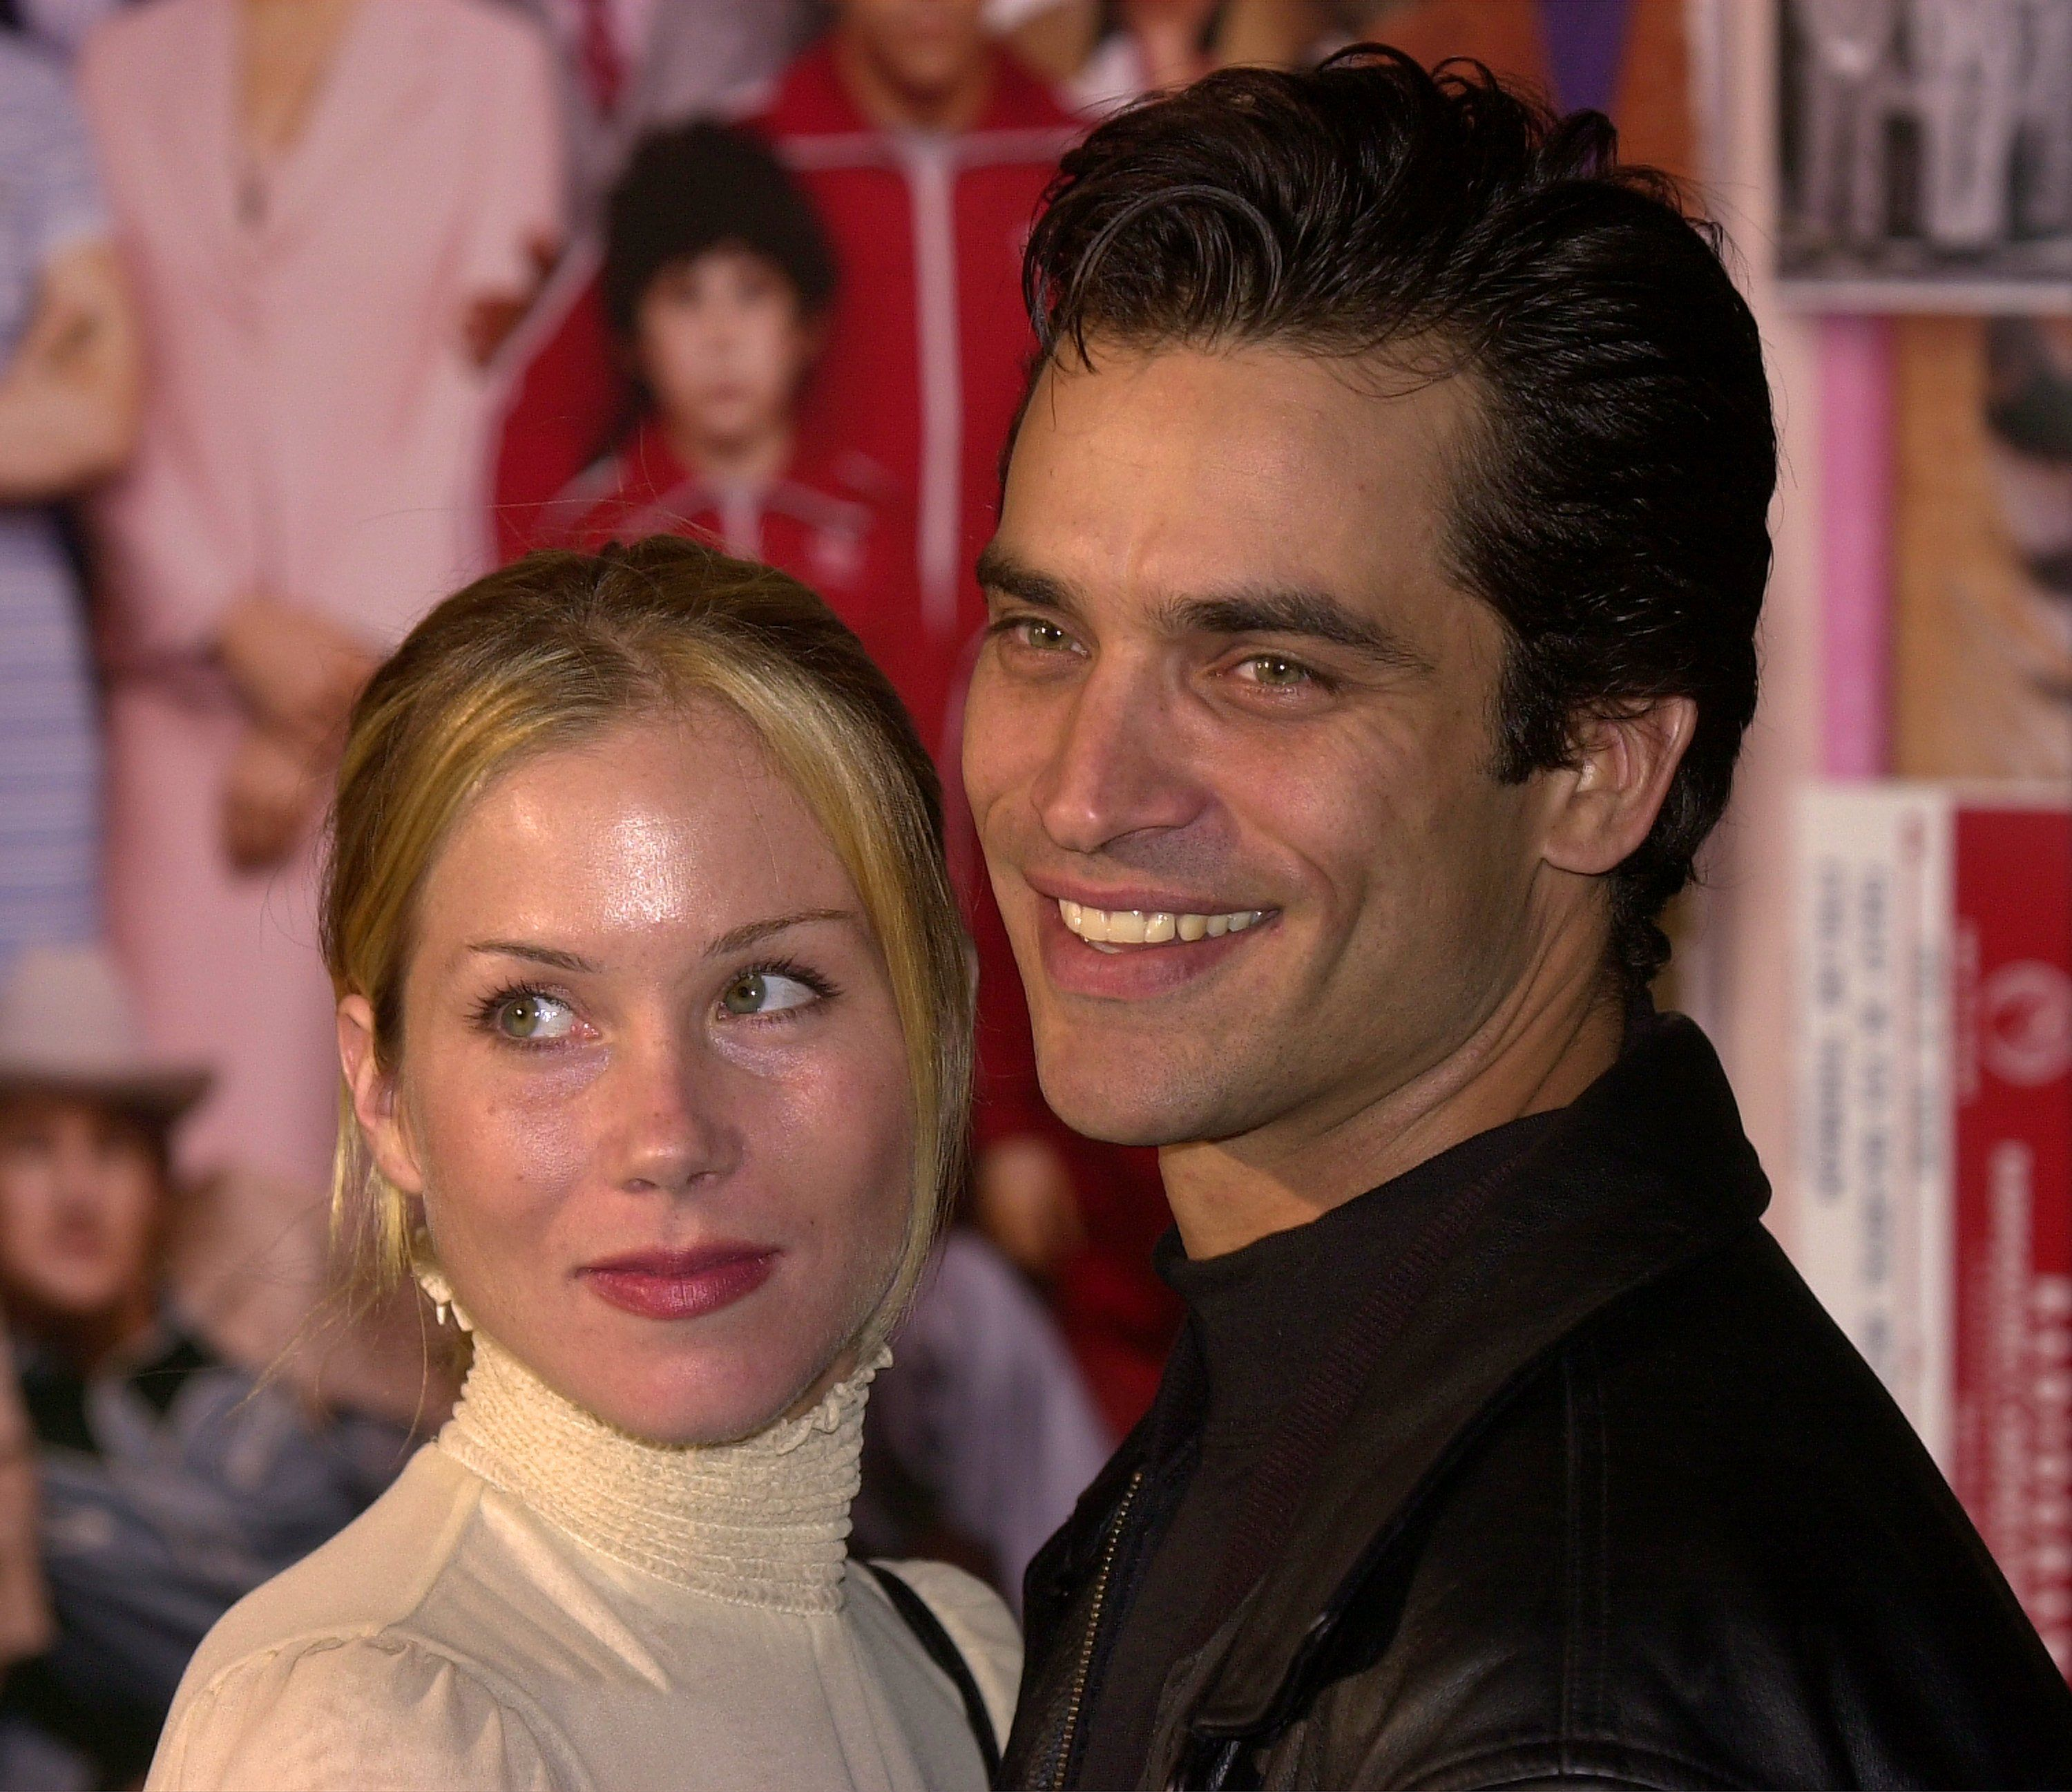 """Christina Applegate and ex-husband Johnathon Schaech at the premiere of the film """"The Royal Tenenbaums"""" in 2001 